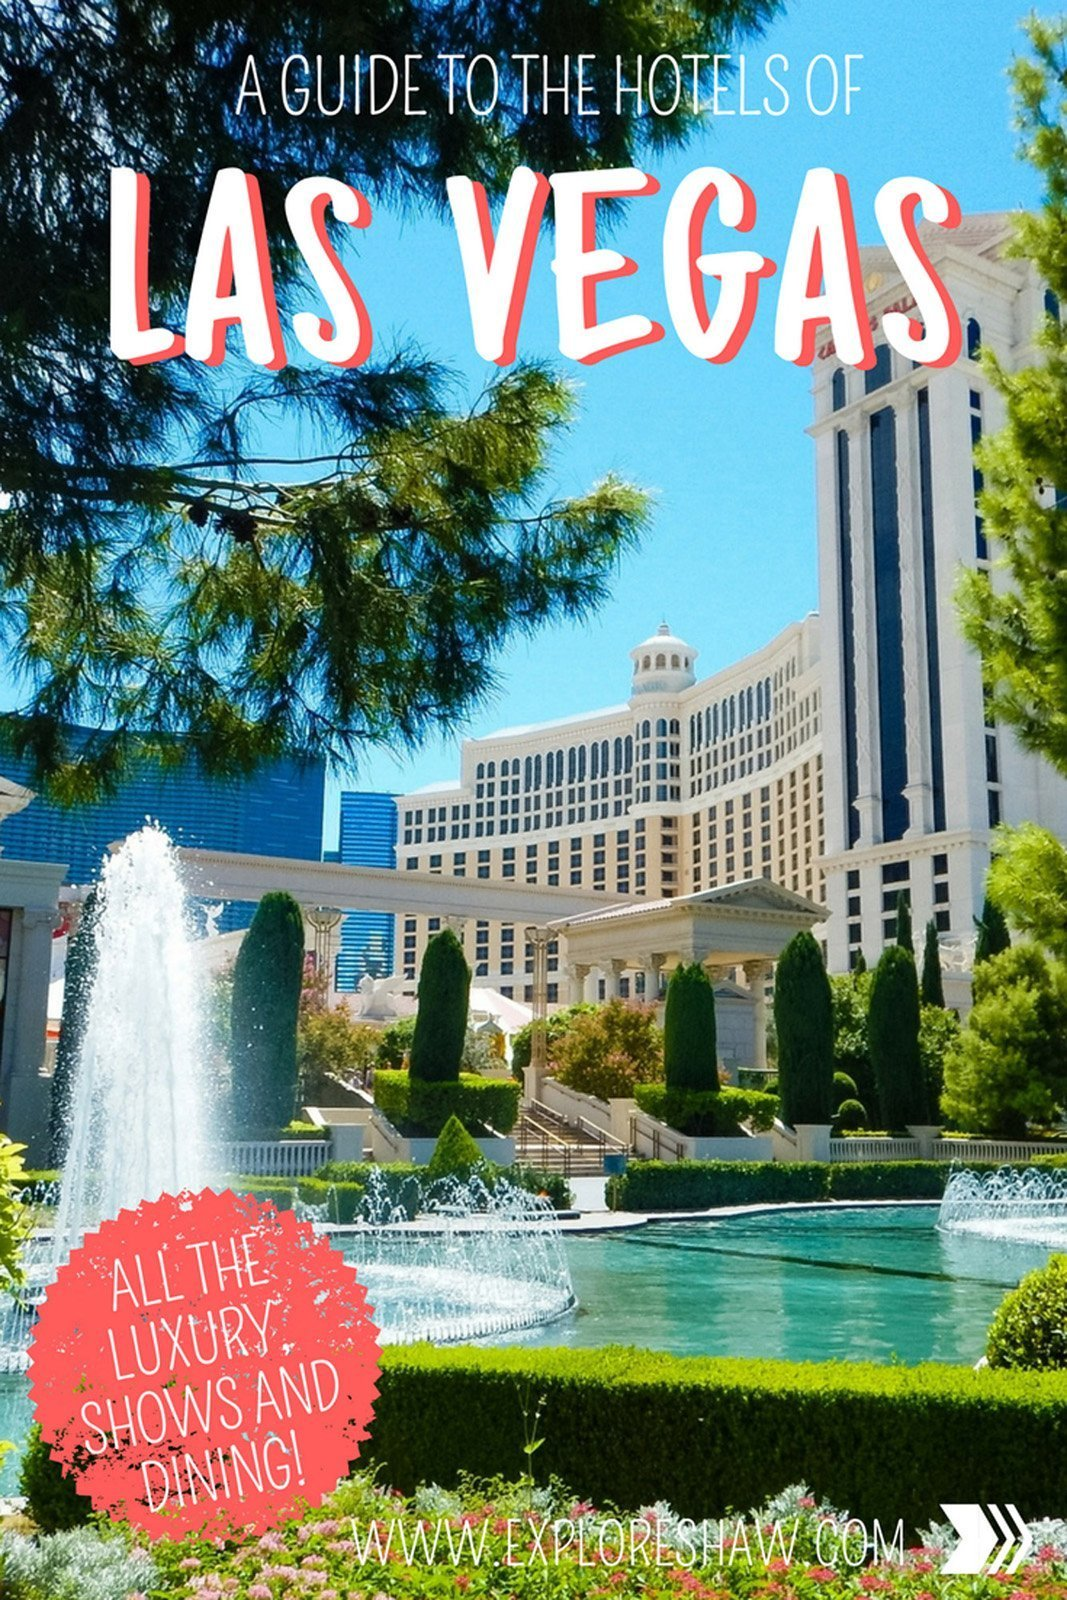 A GUIDE TO THE HOTELS OF LAS VEGAS